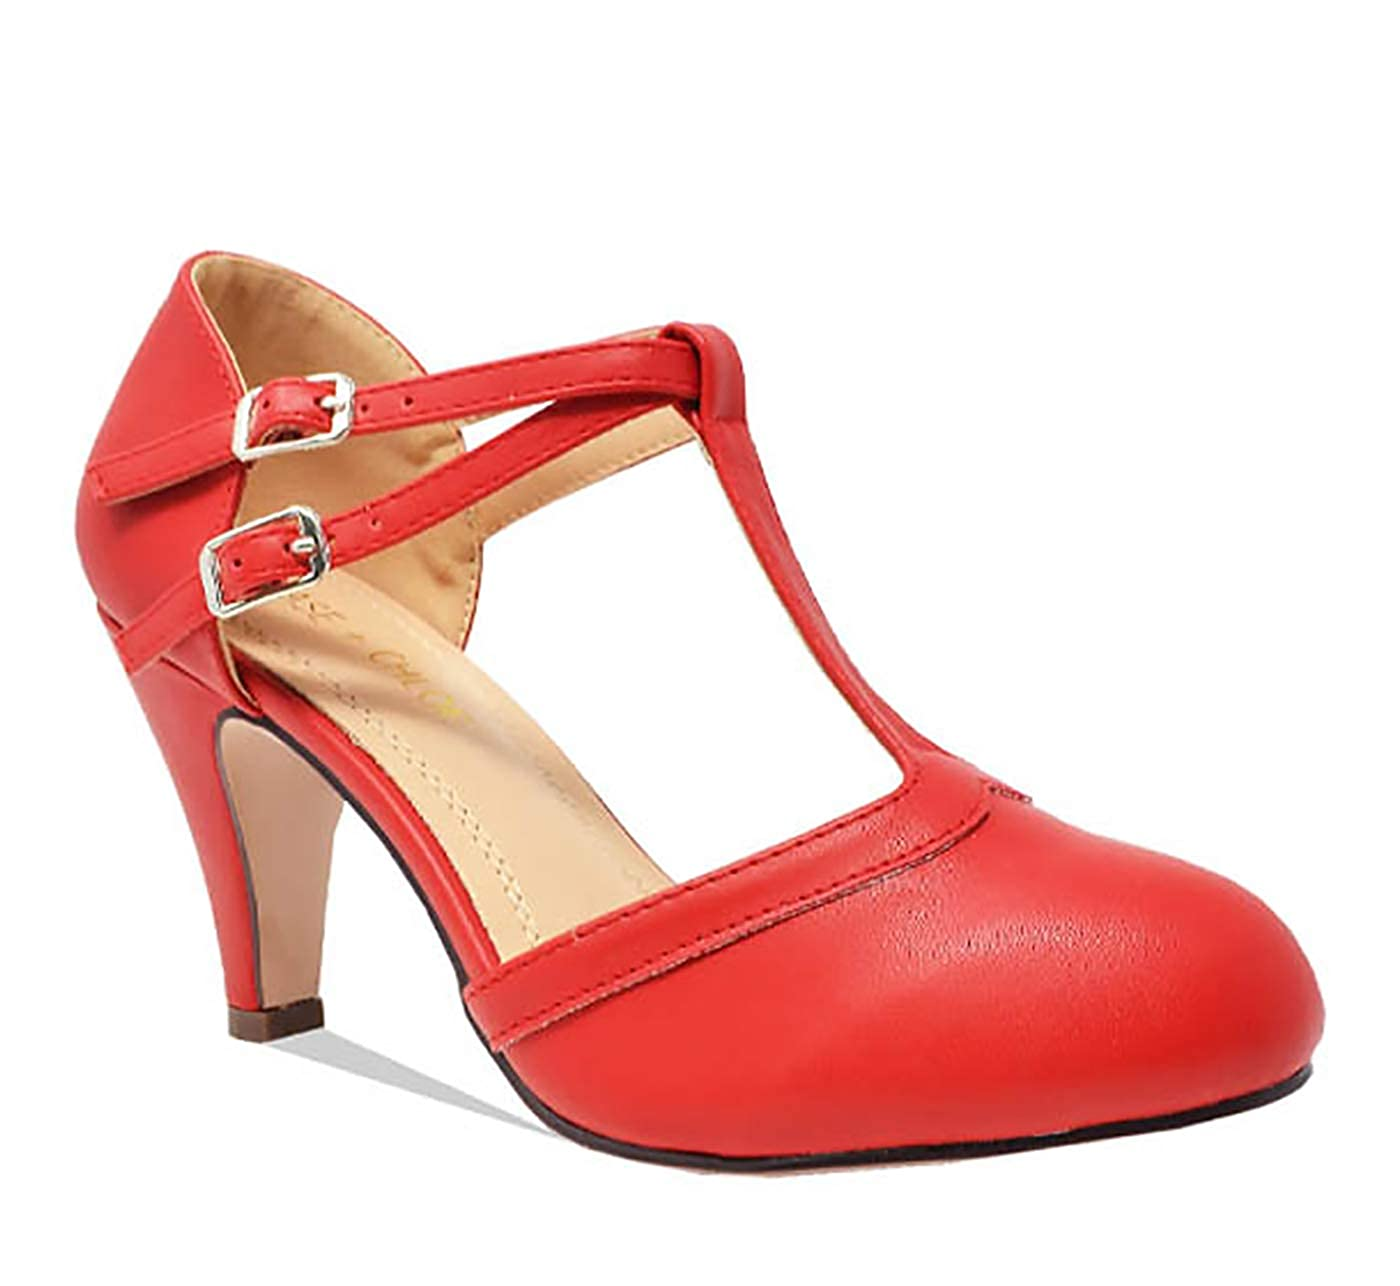 Vintage Style Shoes, Vintage Inspired Shoes Chase & Chloe Kimmy-58 Womens Mary Jane T-Strap Round Toe Pump $39.99 AT vintagedancer.com